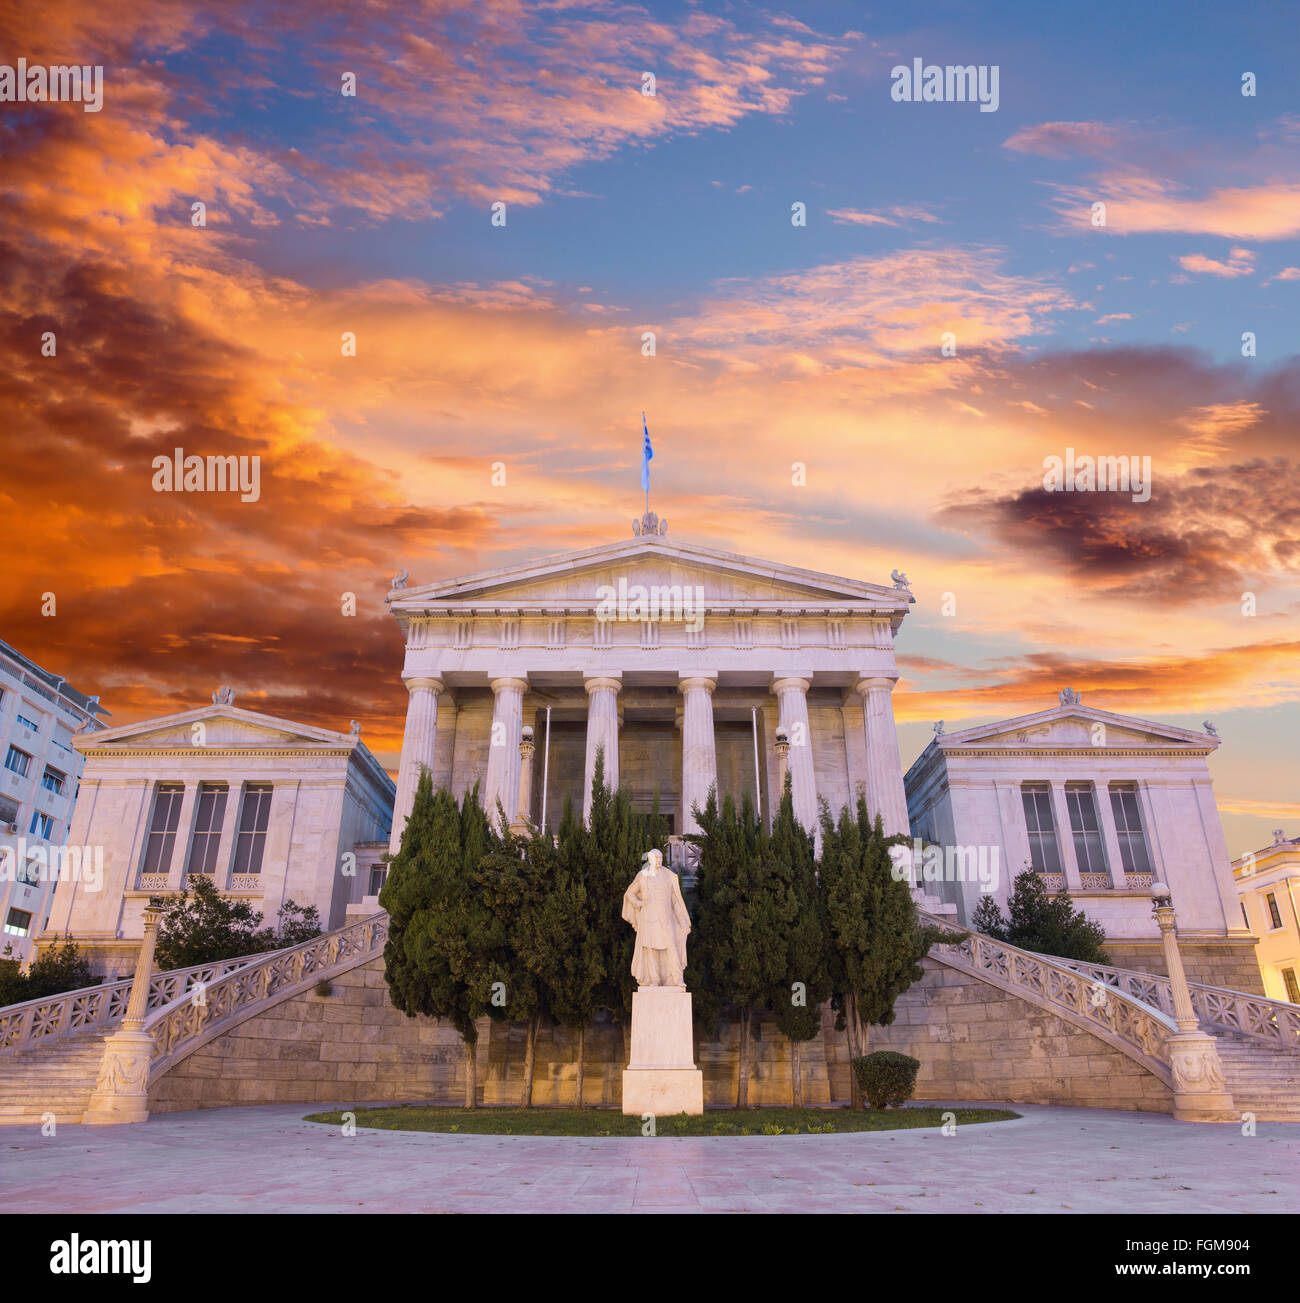 Athens - The building of National and Kapodistrian University of Athens at dusk Stock Photo